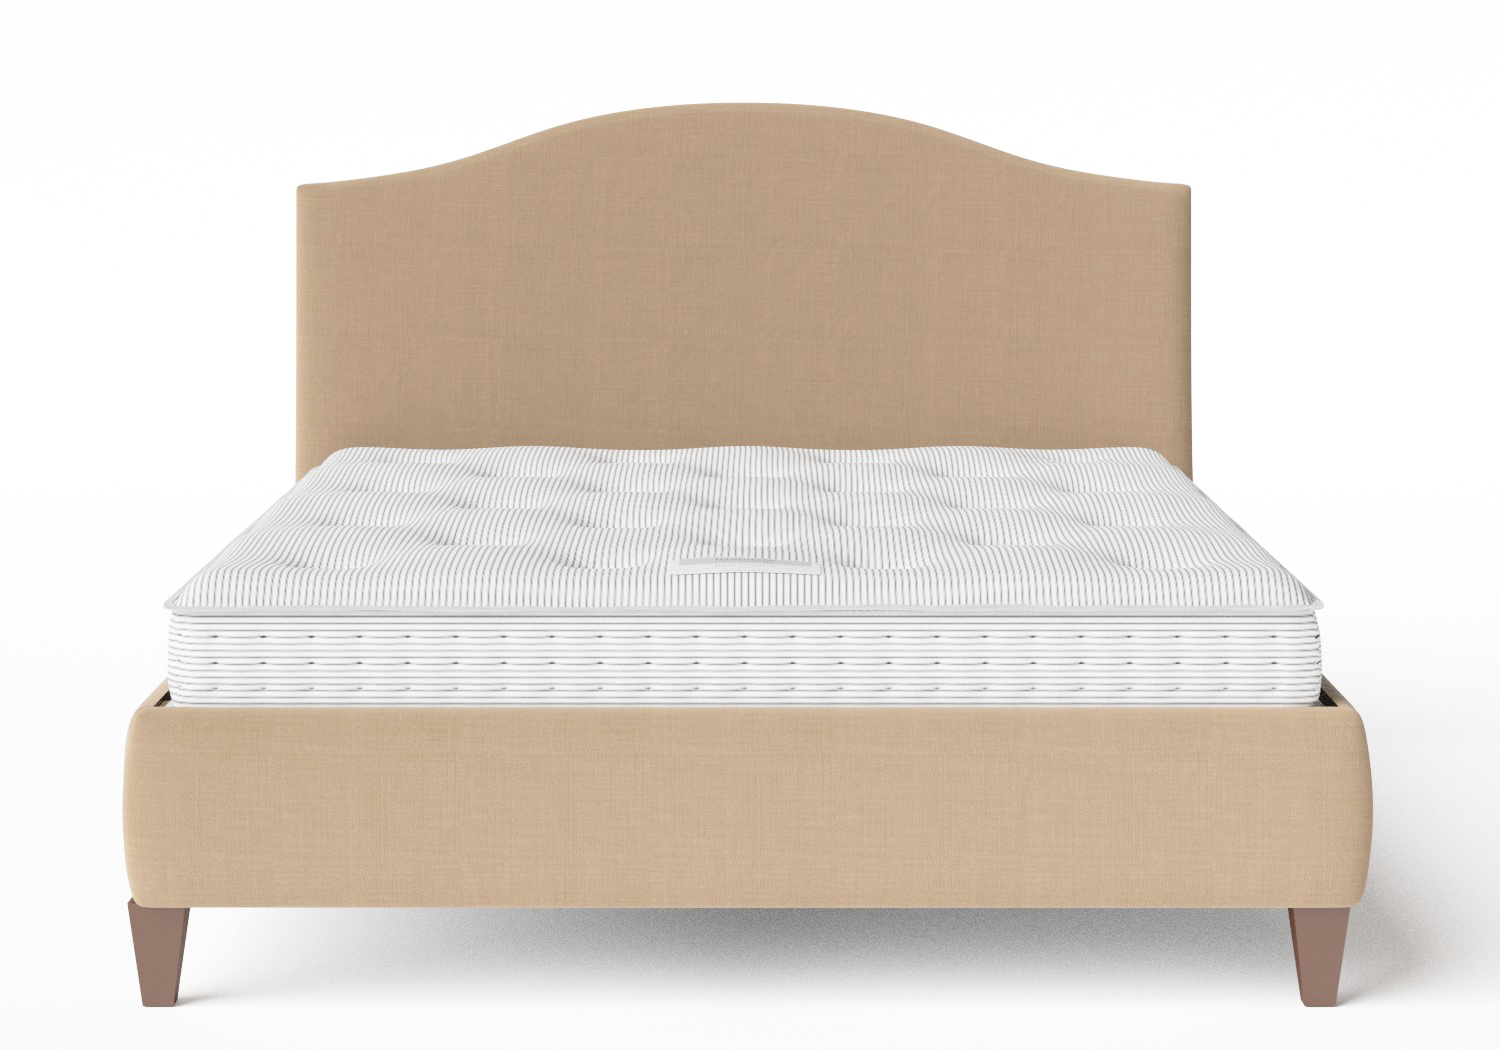 Daniella Upholstered bed in Straw fabric shown with Juno 1 mattress